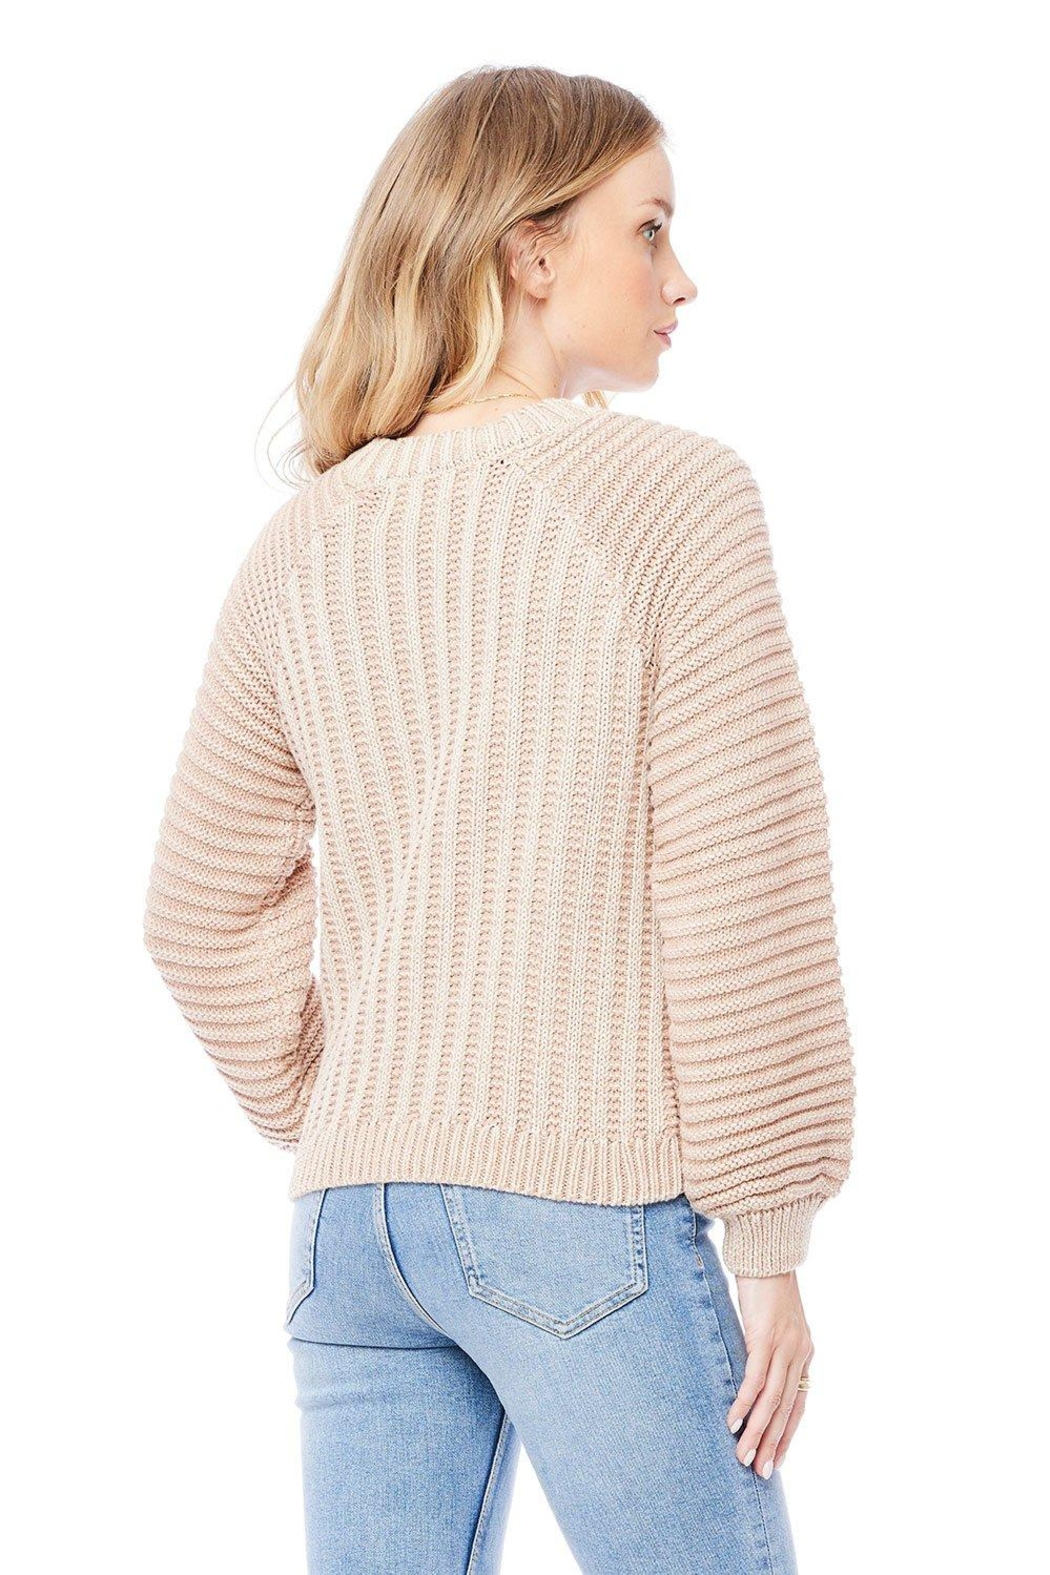 Saltwater Luxe Bergen Sweater - Side Cropped Image